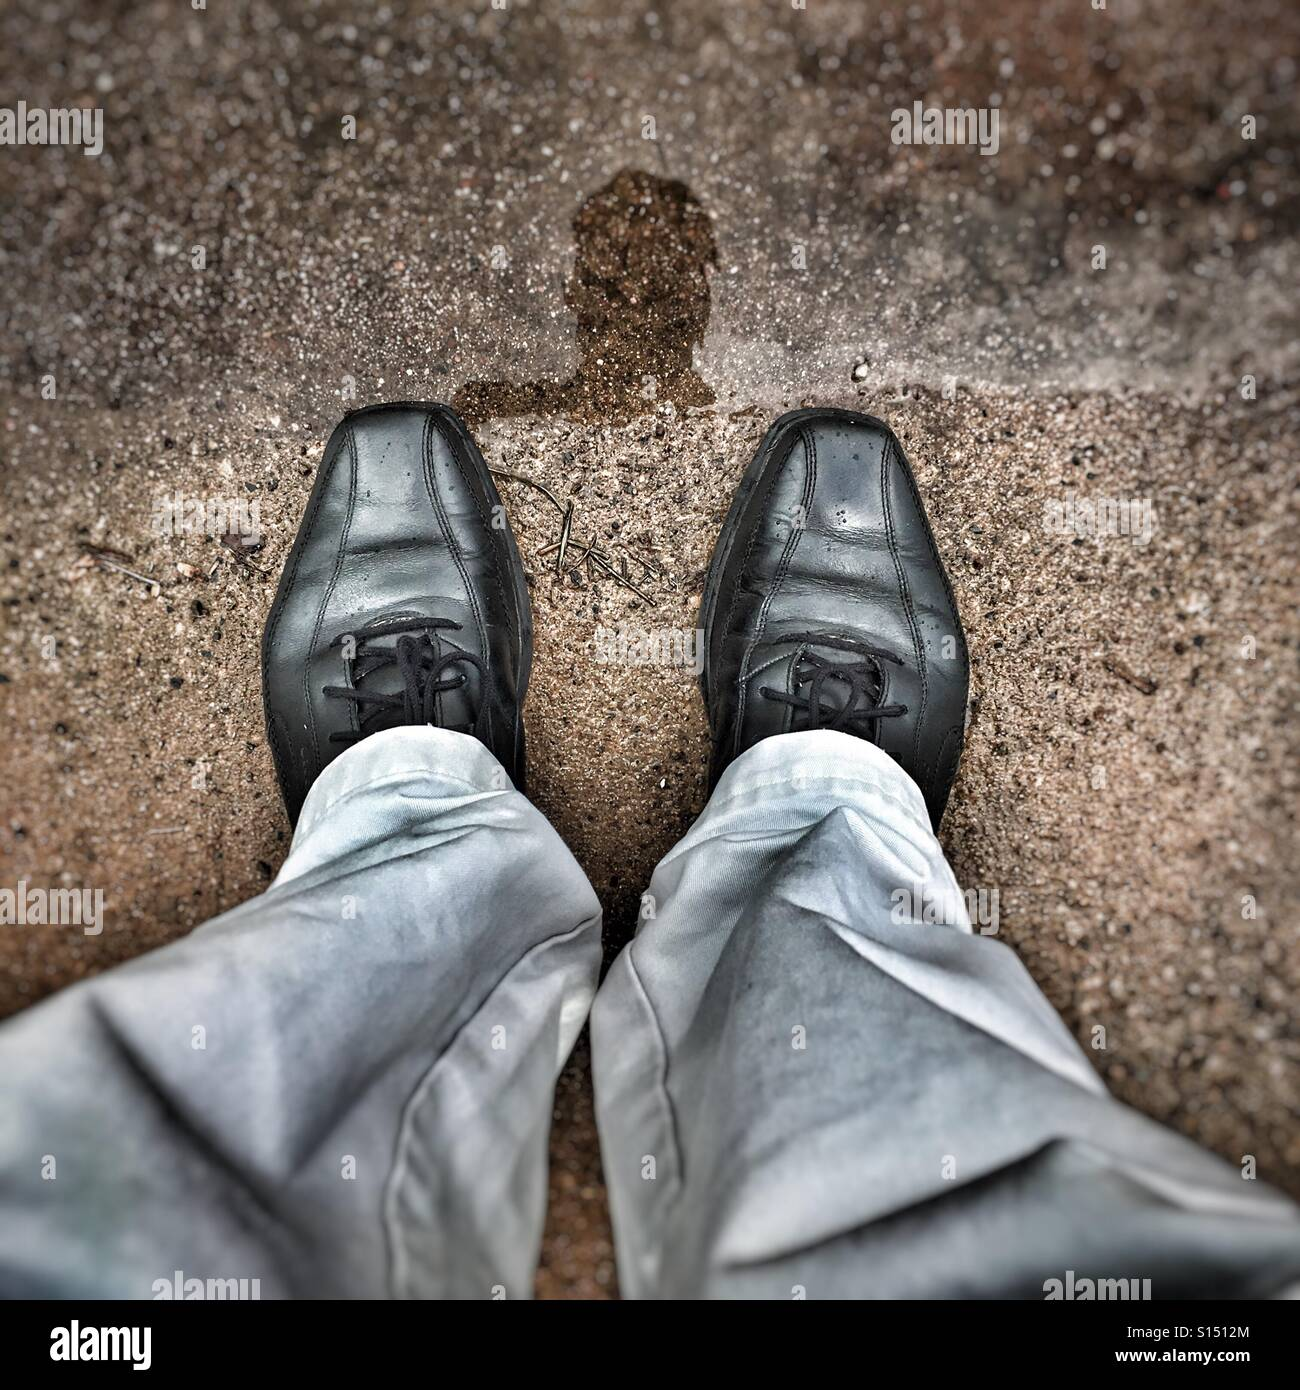 Man's feet and the reflection of his head in a puddle. - Stock Image